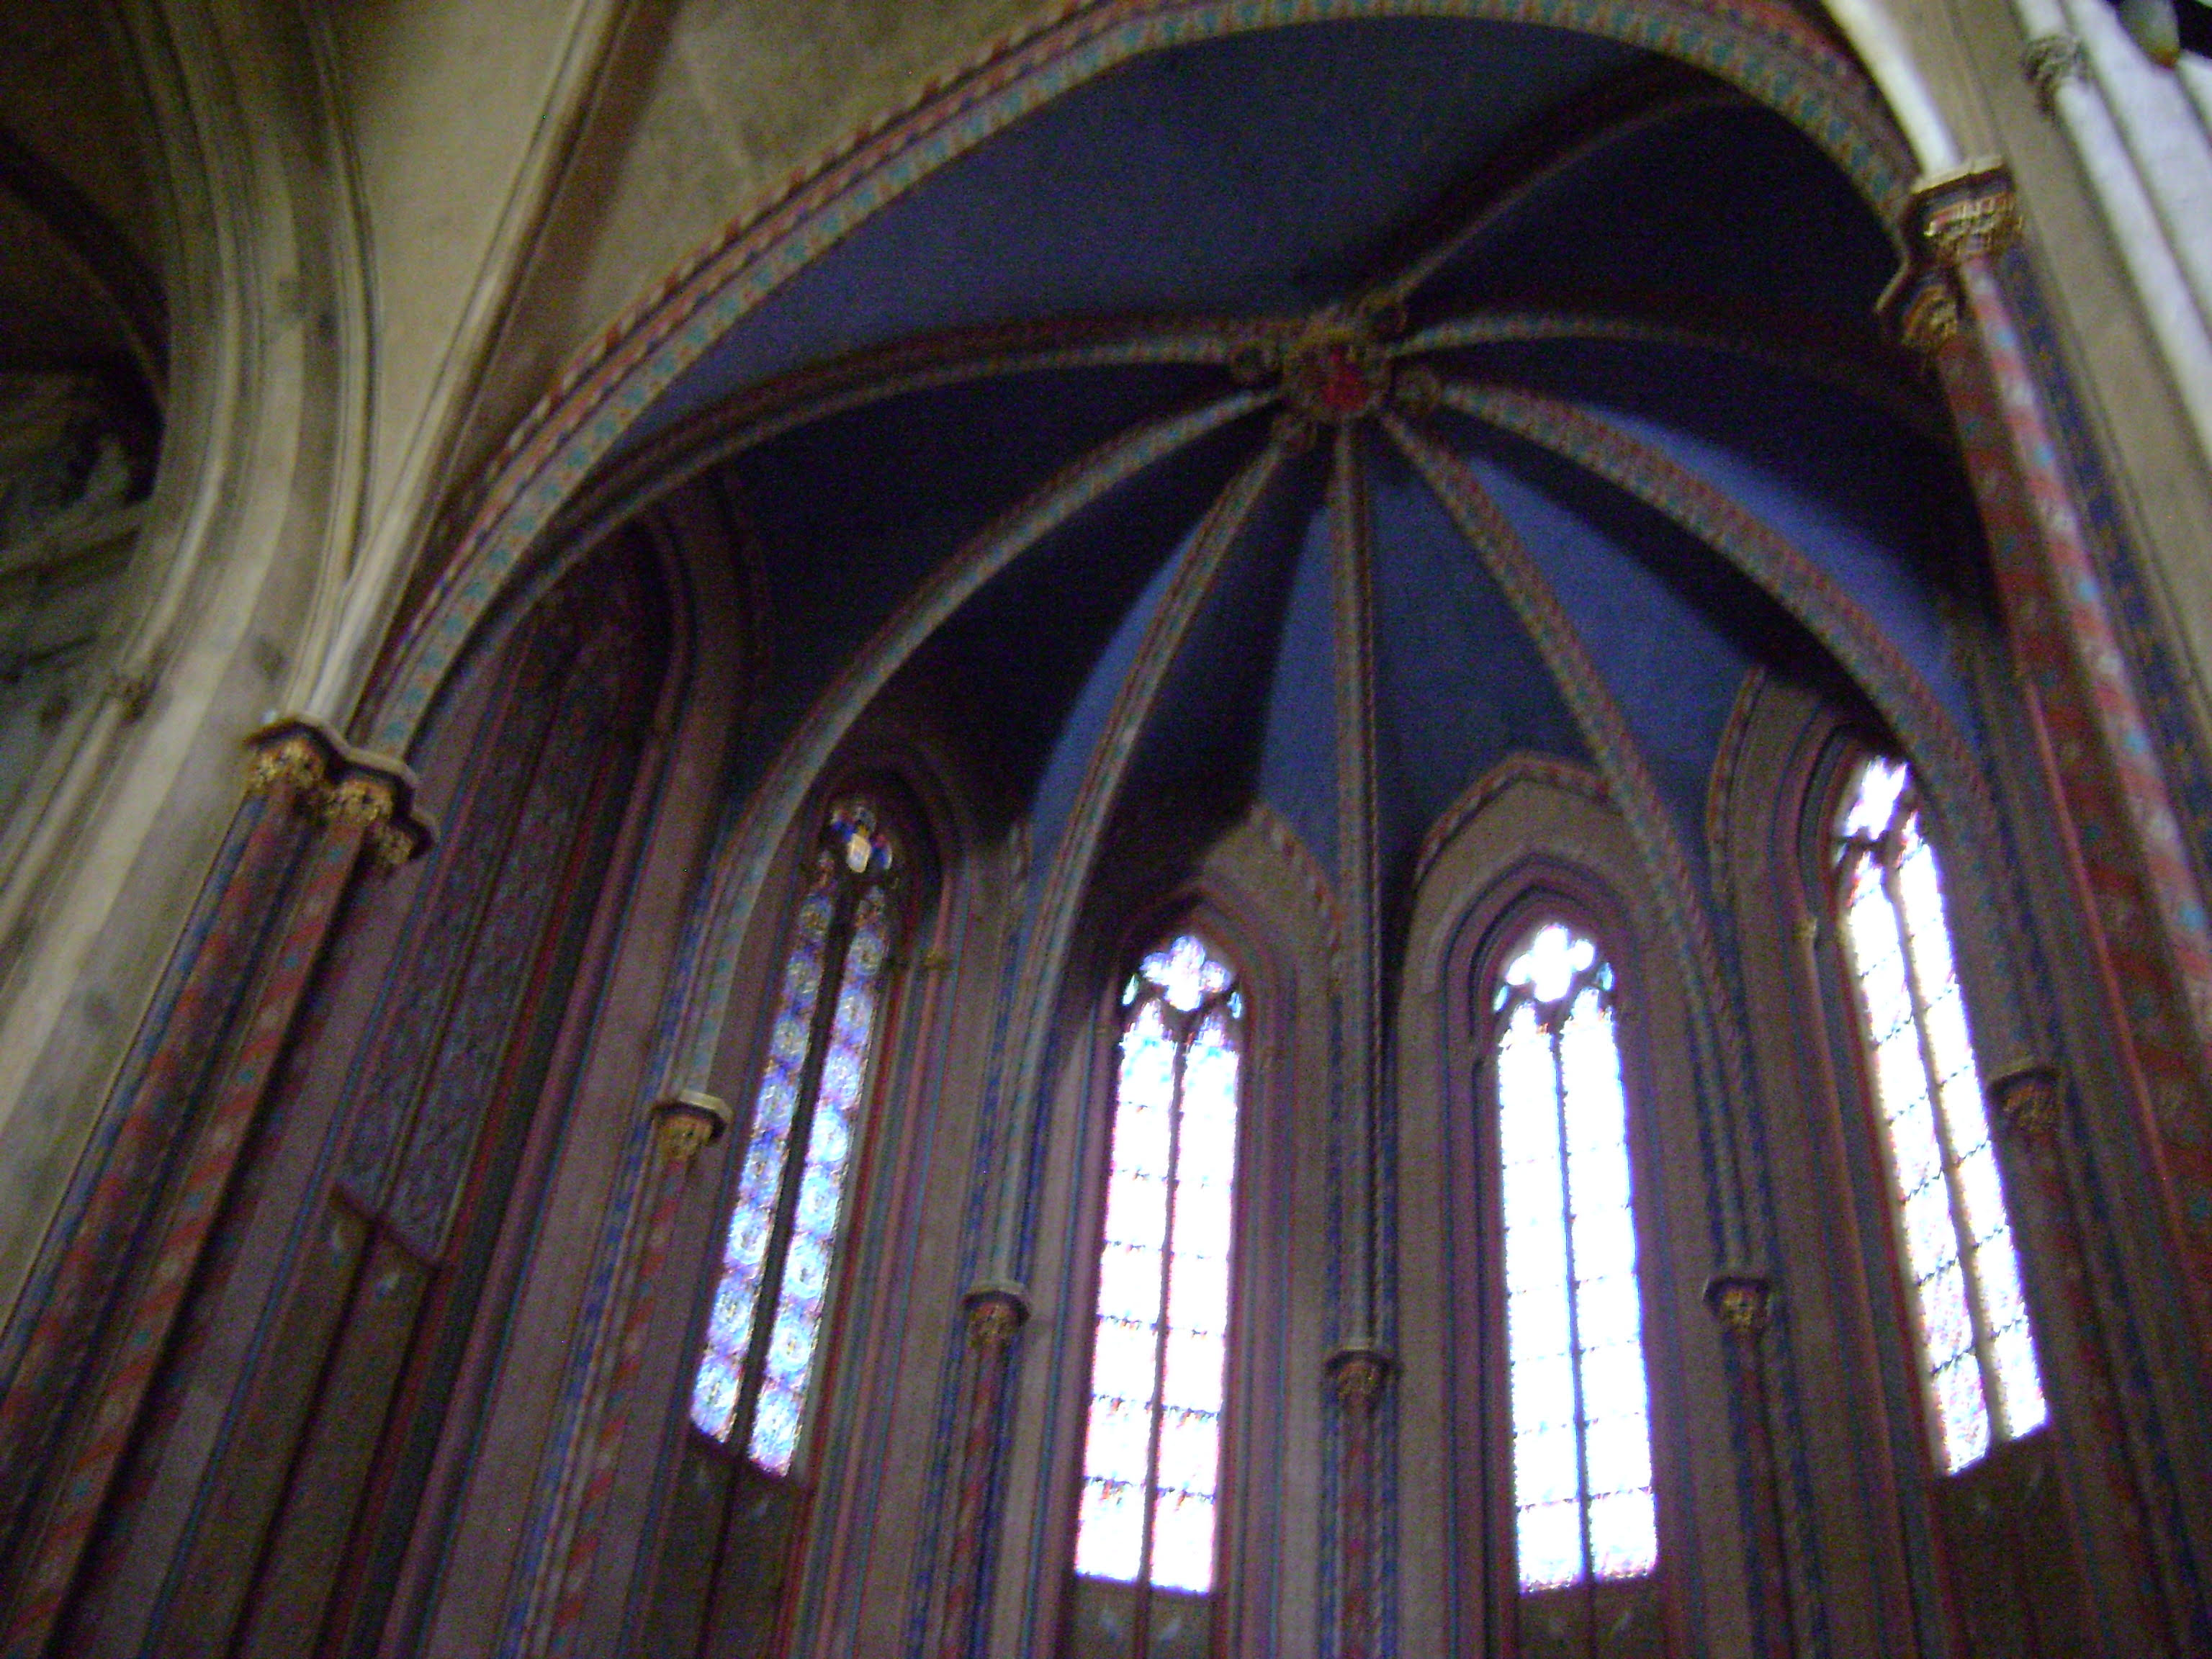 The beautiful arched ceiling in one of Paris' many churches and cathedrals.